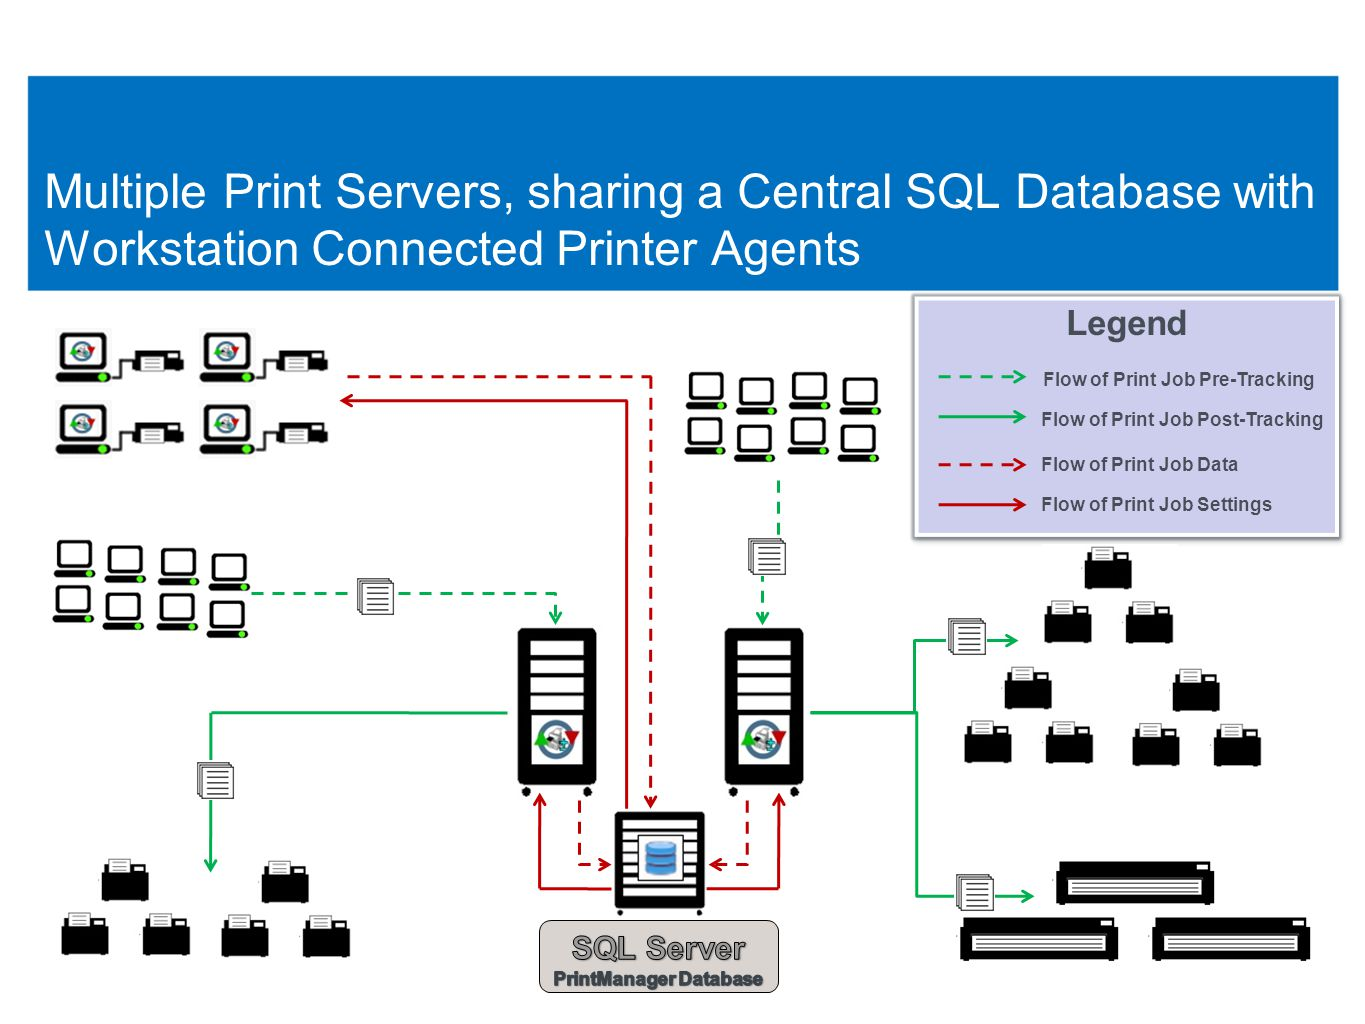 11 Multiple Print Servers, sharing a Central SQL Database with Workstation Connected Printer Agents 11 Legend Flow of Print Job Pre-Tracking Flow of Print Job Post-Tracking Flow of Print Job Data Flow of Print Job Settings Legend Flow of Print Job Pre-Tracking Flow of Print Job Post-Tracking Flow of Print Job Data Flow of Print Job Settings